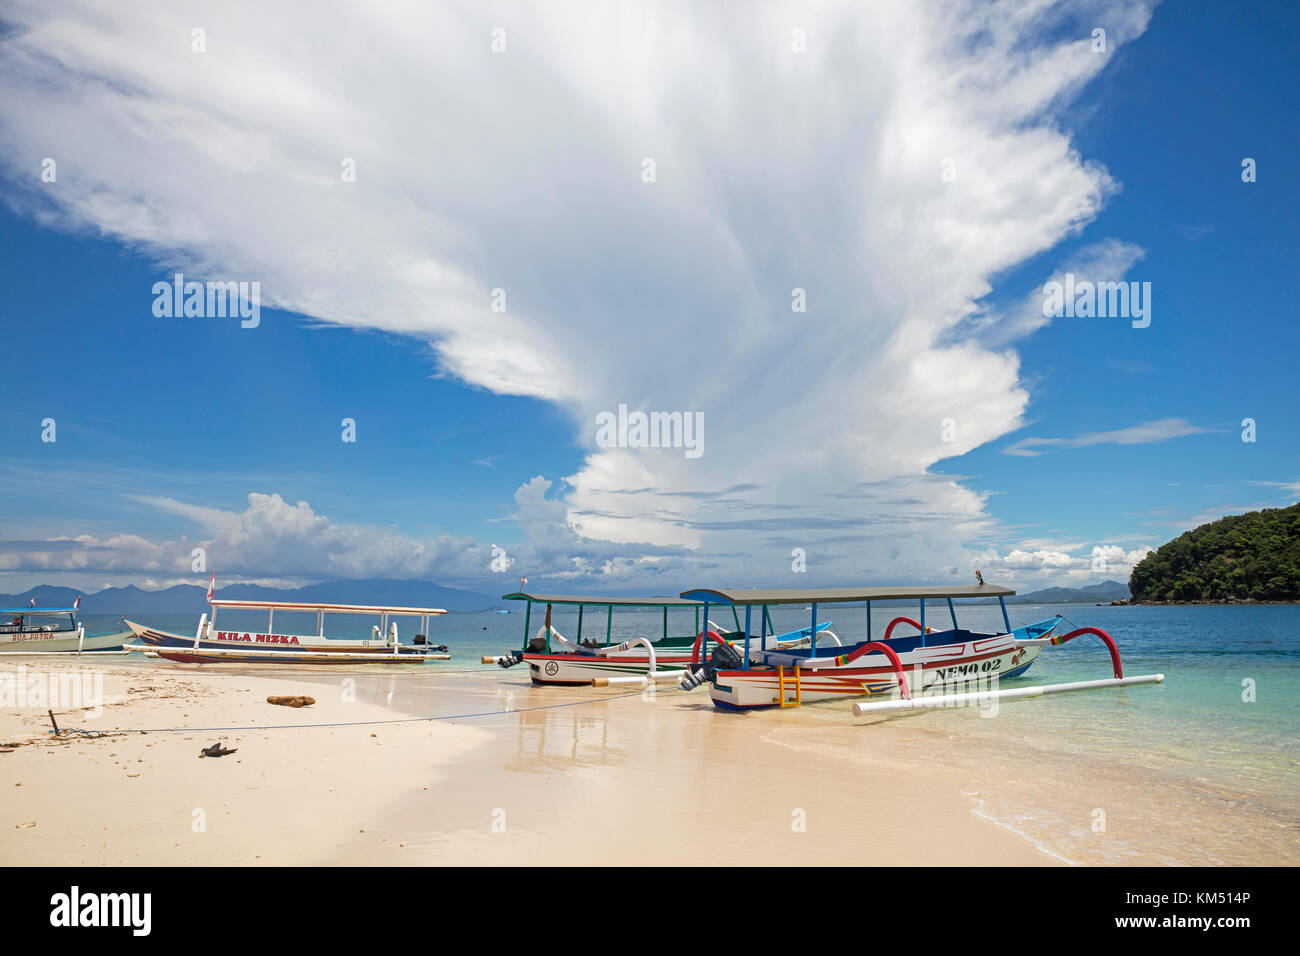 Outrigger tourist boats on idyllic tropical beach of the islet Gili Nanggu, part of the Gili Islands, island Lombok, - Stock Image